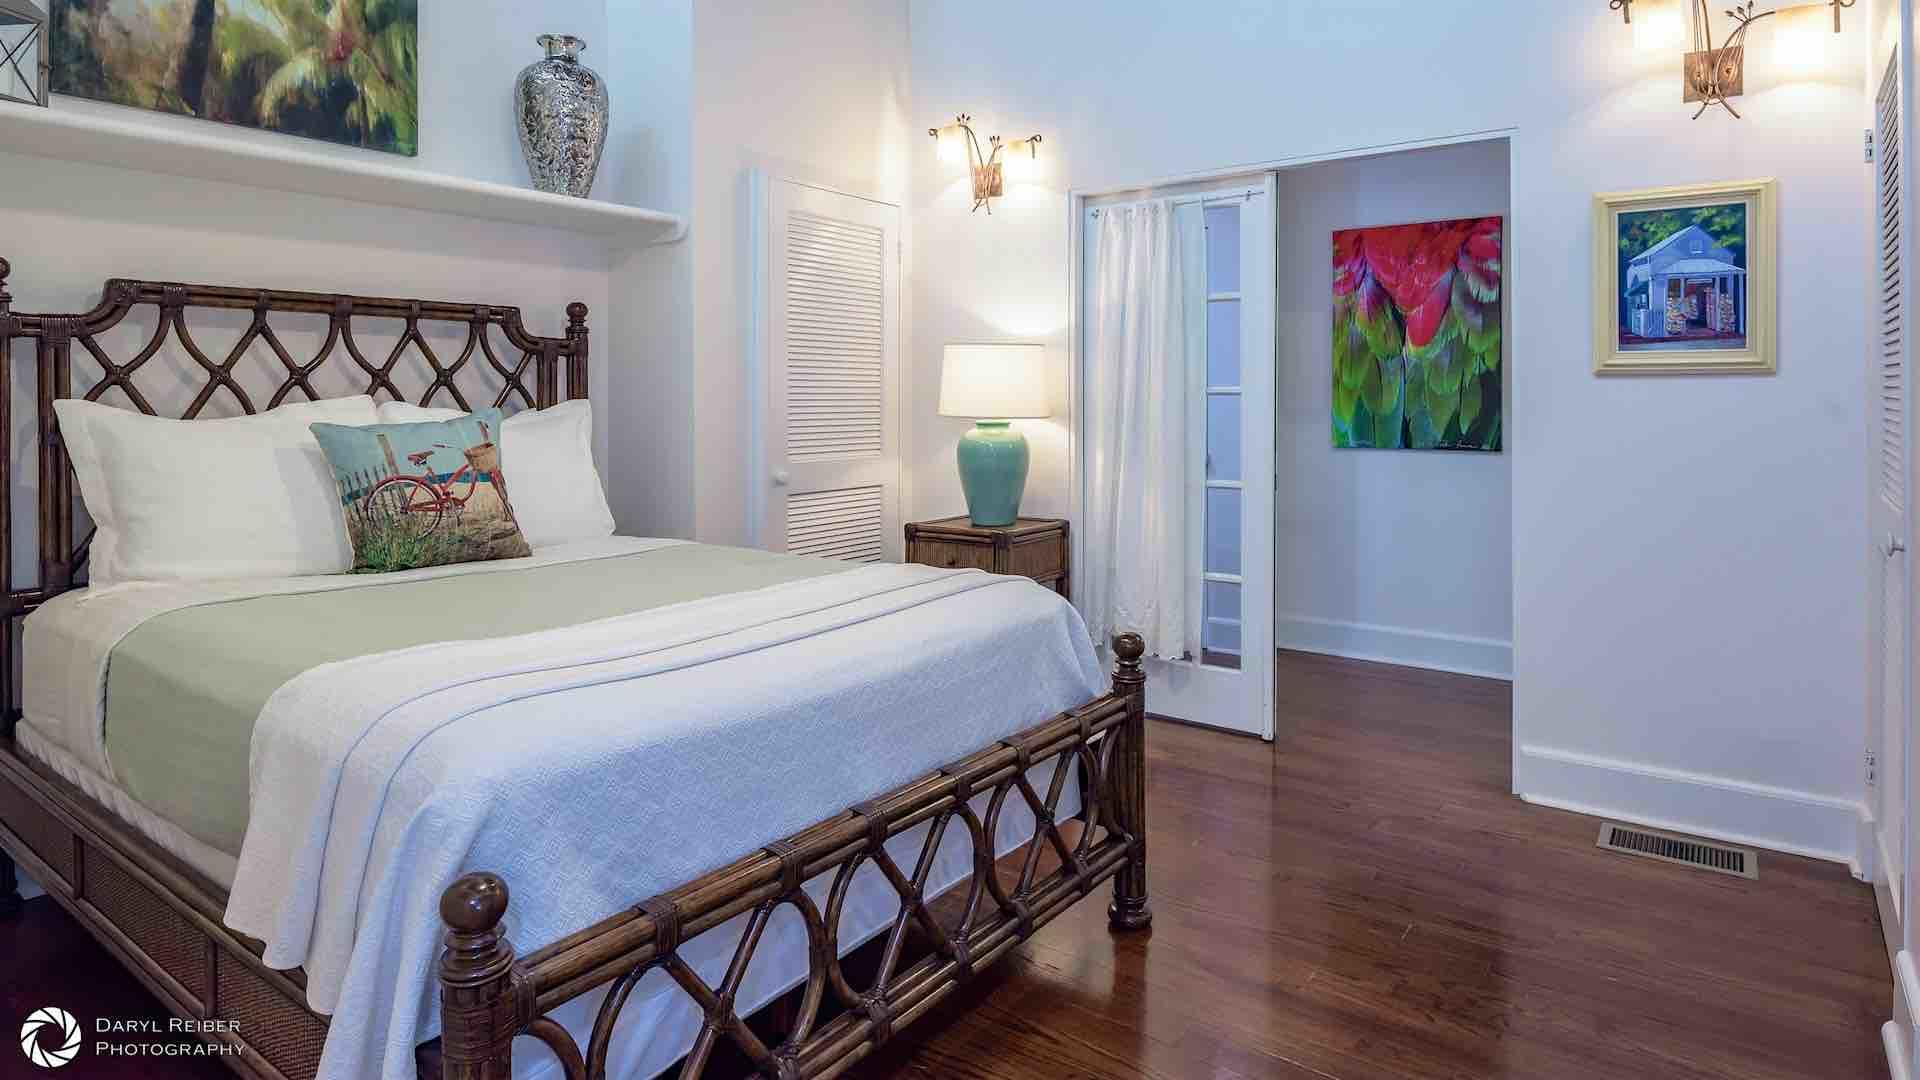 The second bedroom is located down the hall and has a Queen bed...